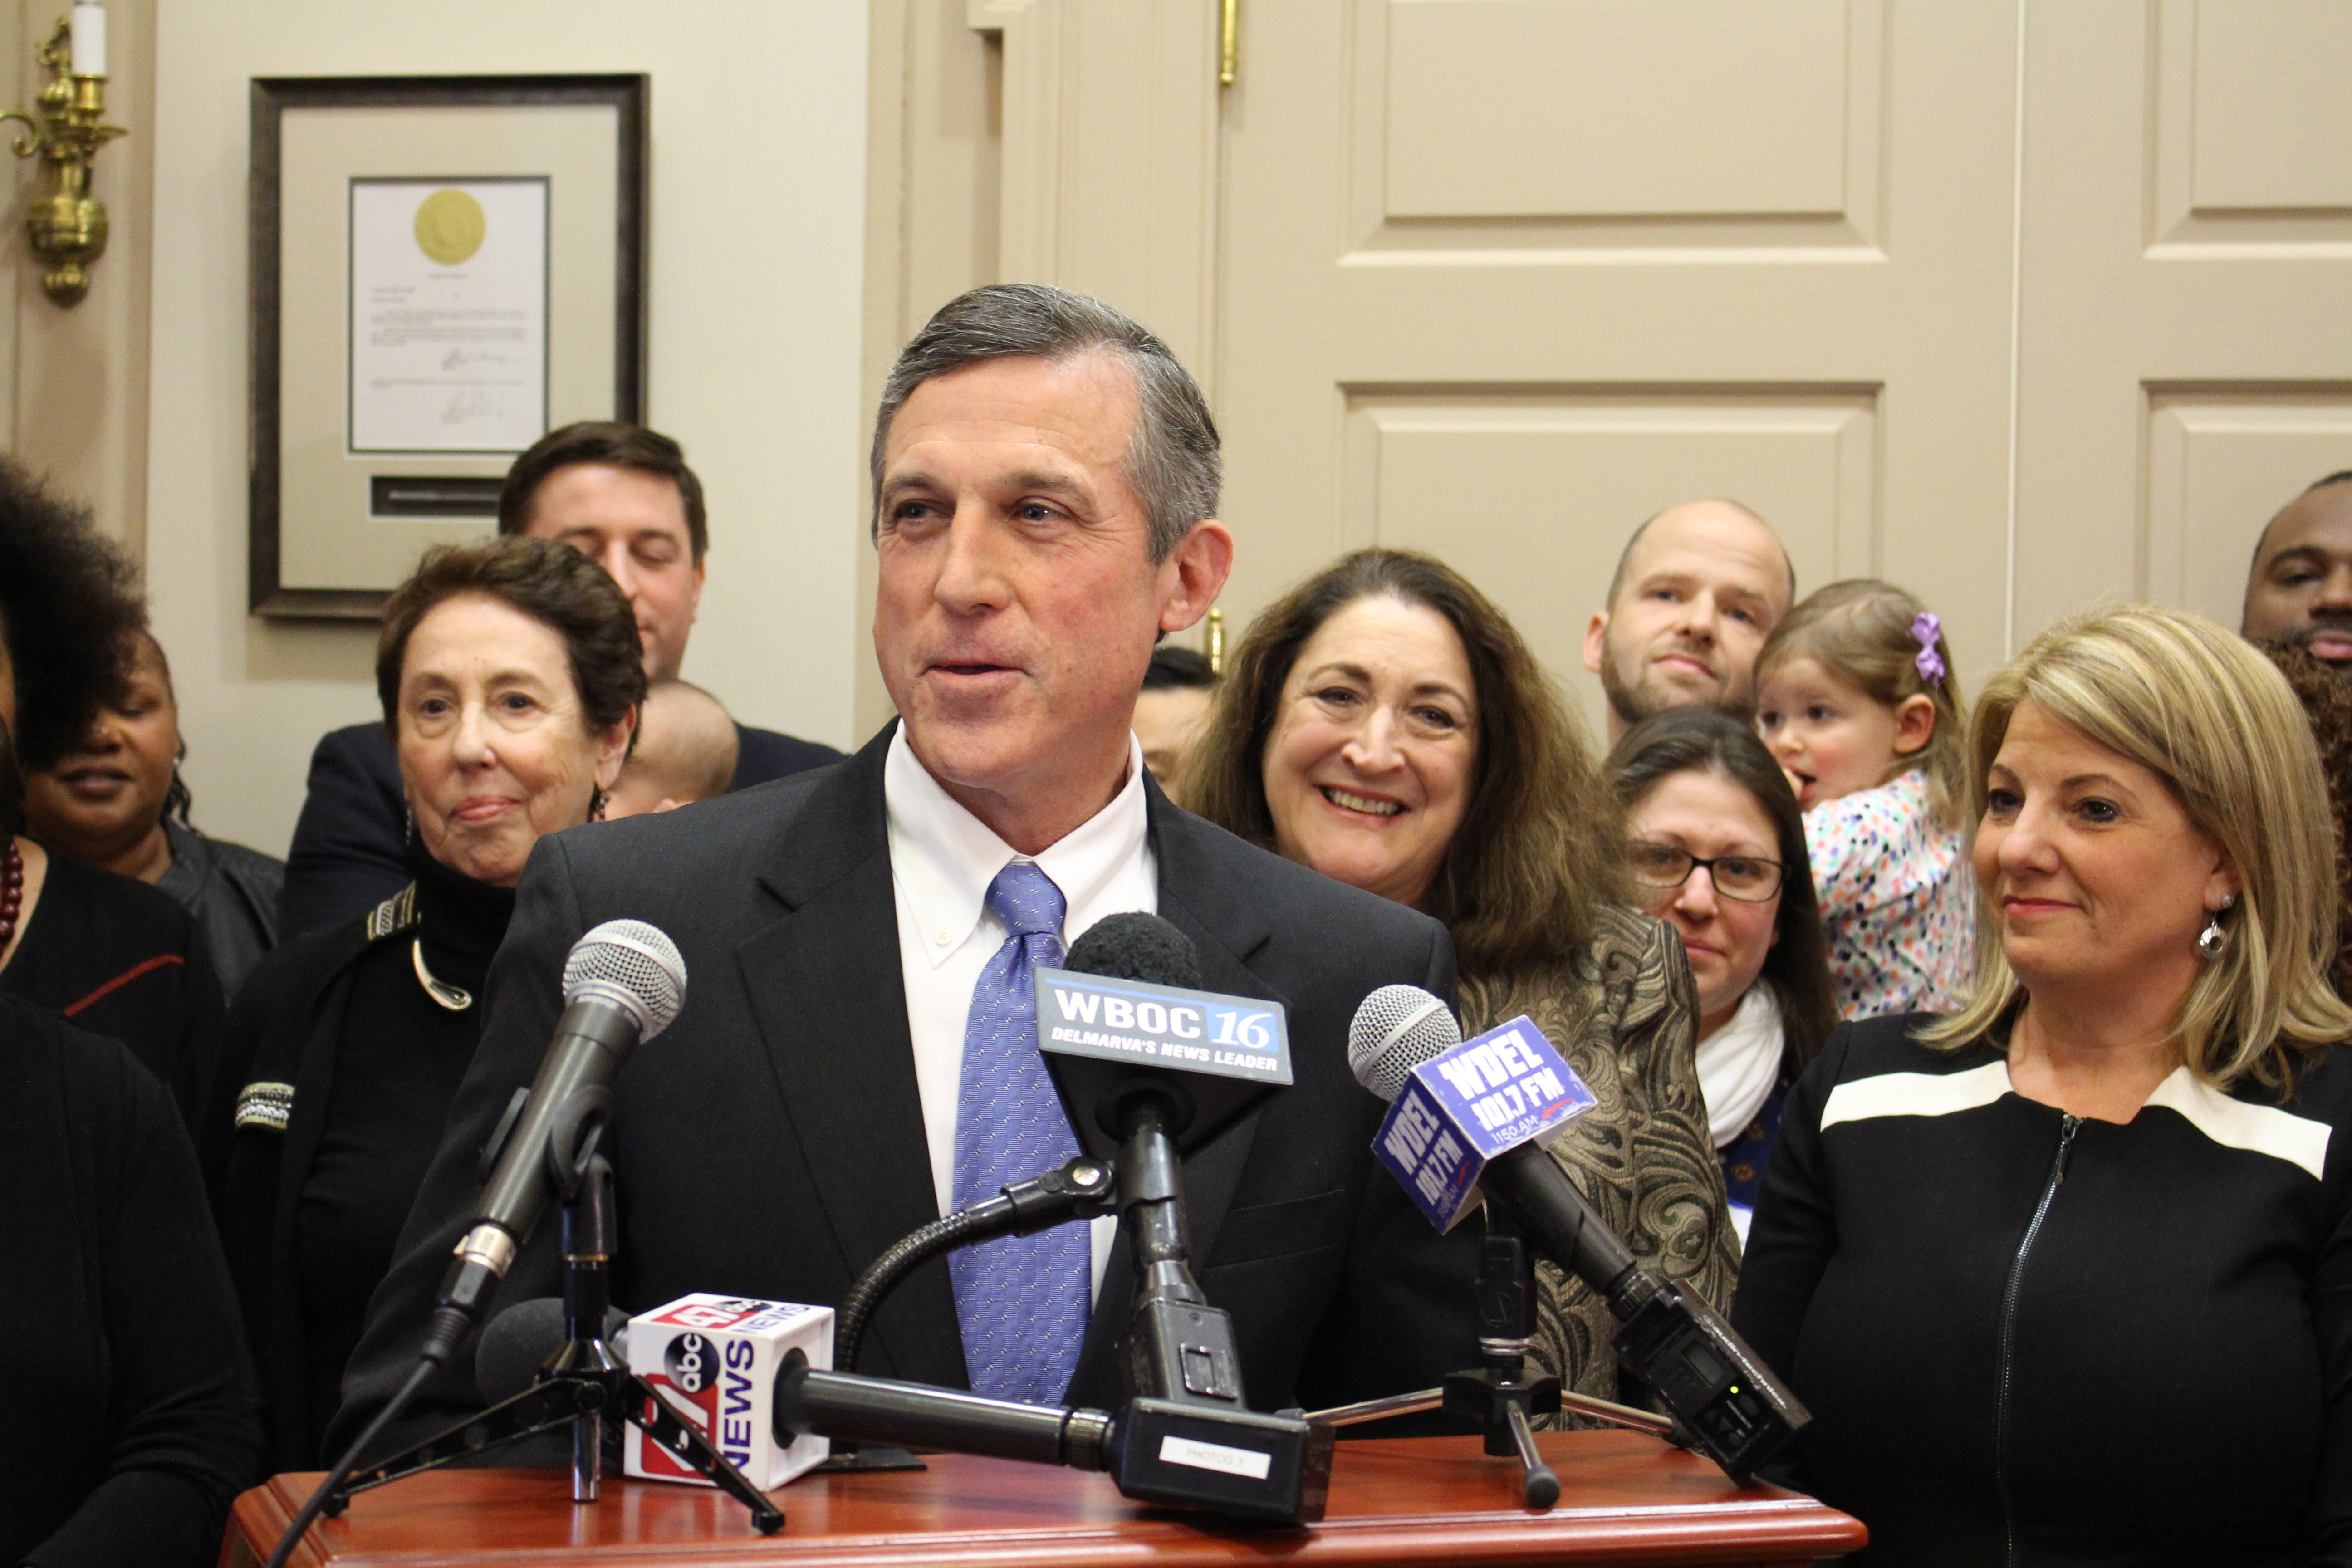 Gov. Carney announces support for paid paternal leave for state workers.